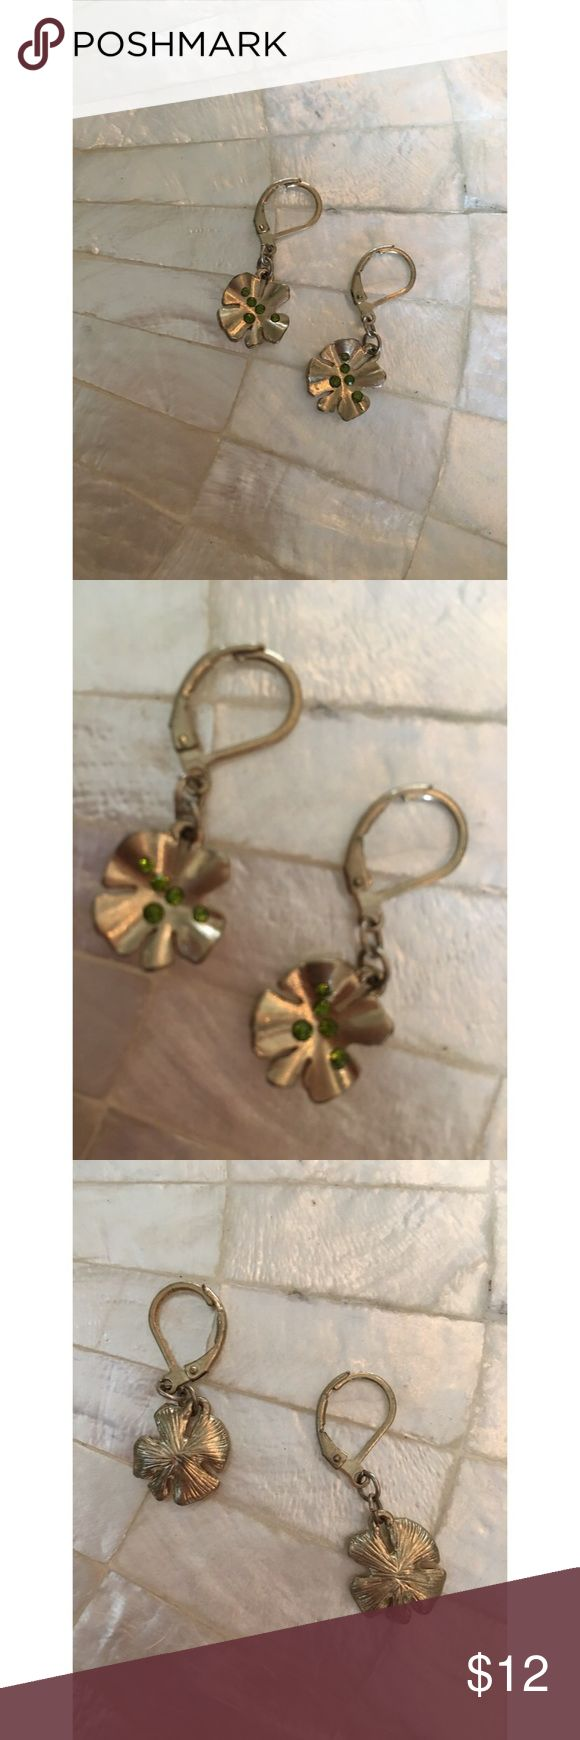 Lucky Clover Earrings These lucky clover earrings by Lauren Conrad are a cute accessory, gold in color with light green stones. VGUC only worn once. LC Lauren Conrad Jewelry Earrings